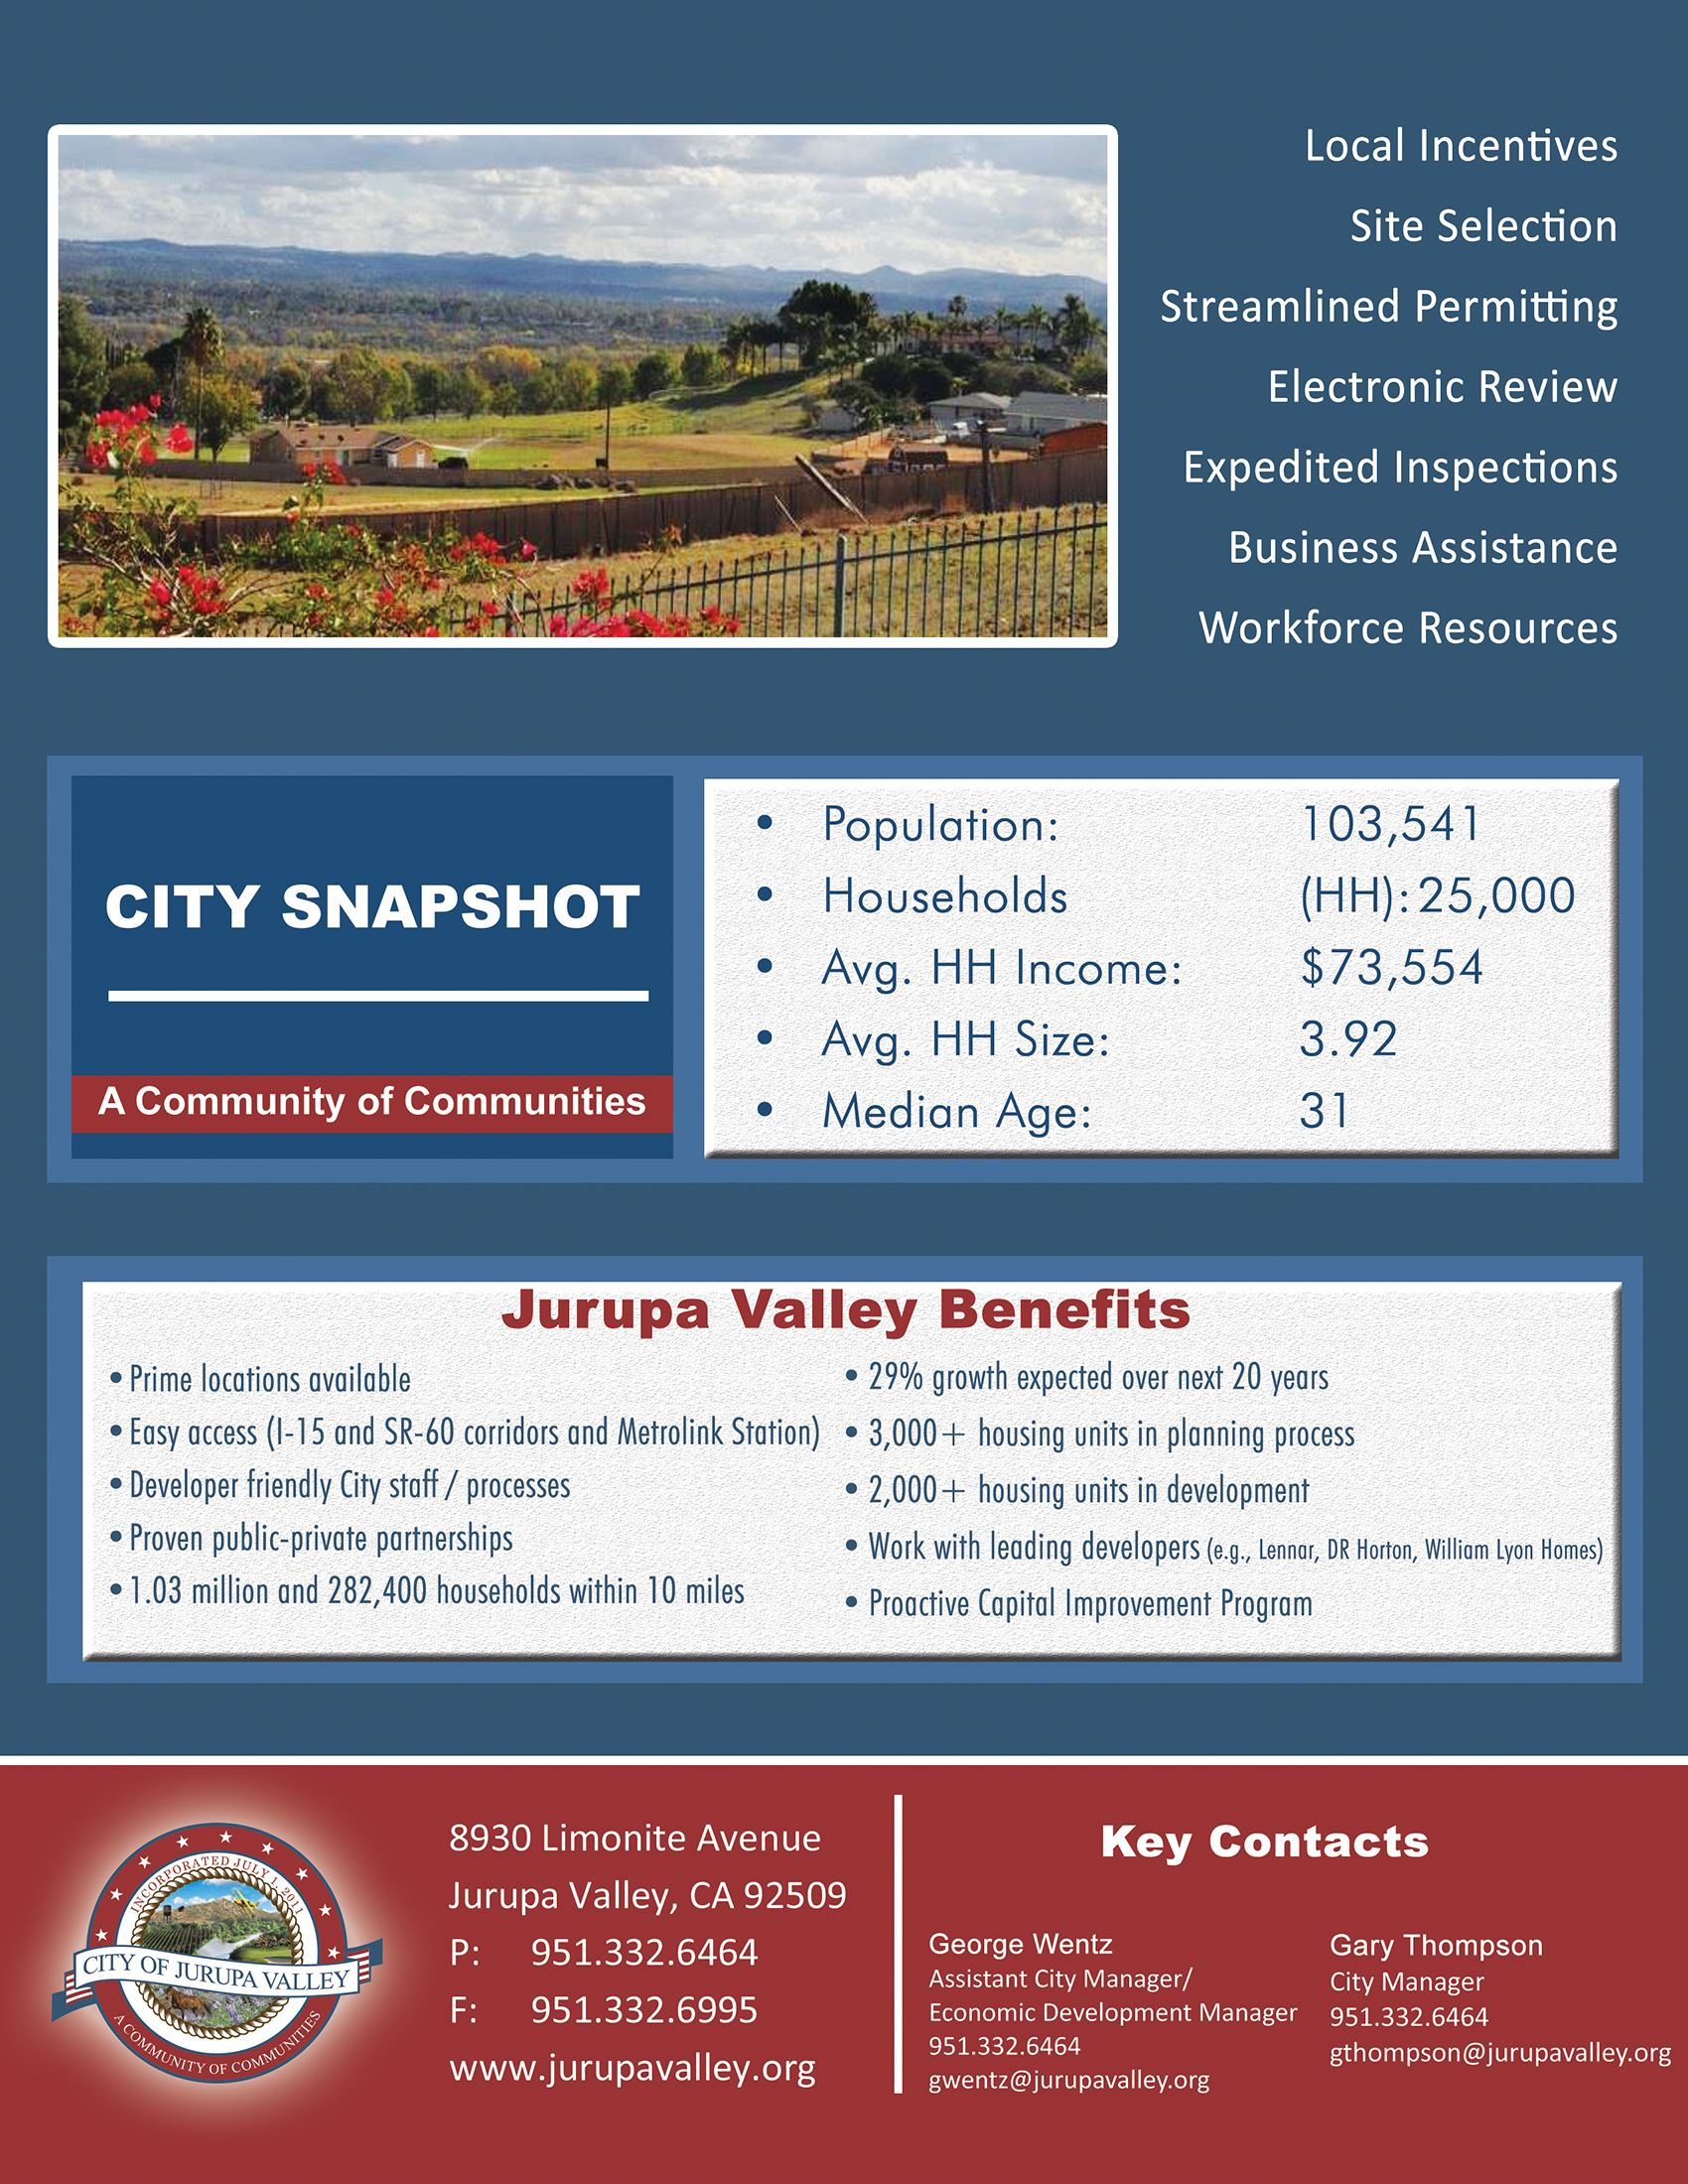 City of Jurupa Valley - A Community of Communities Seal